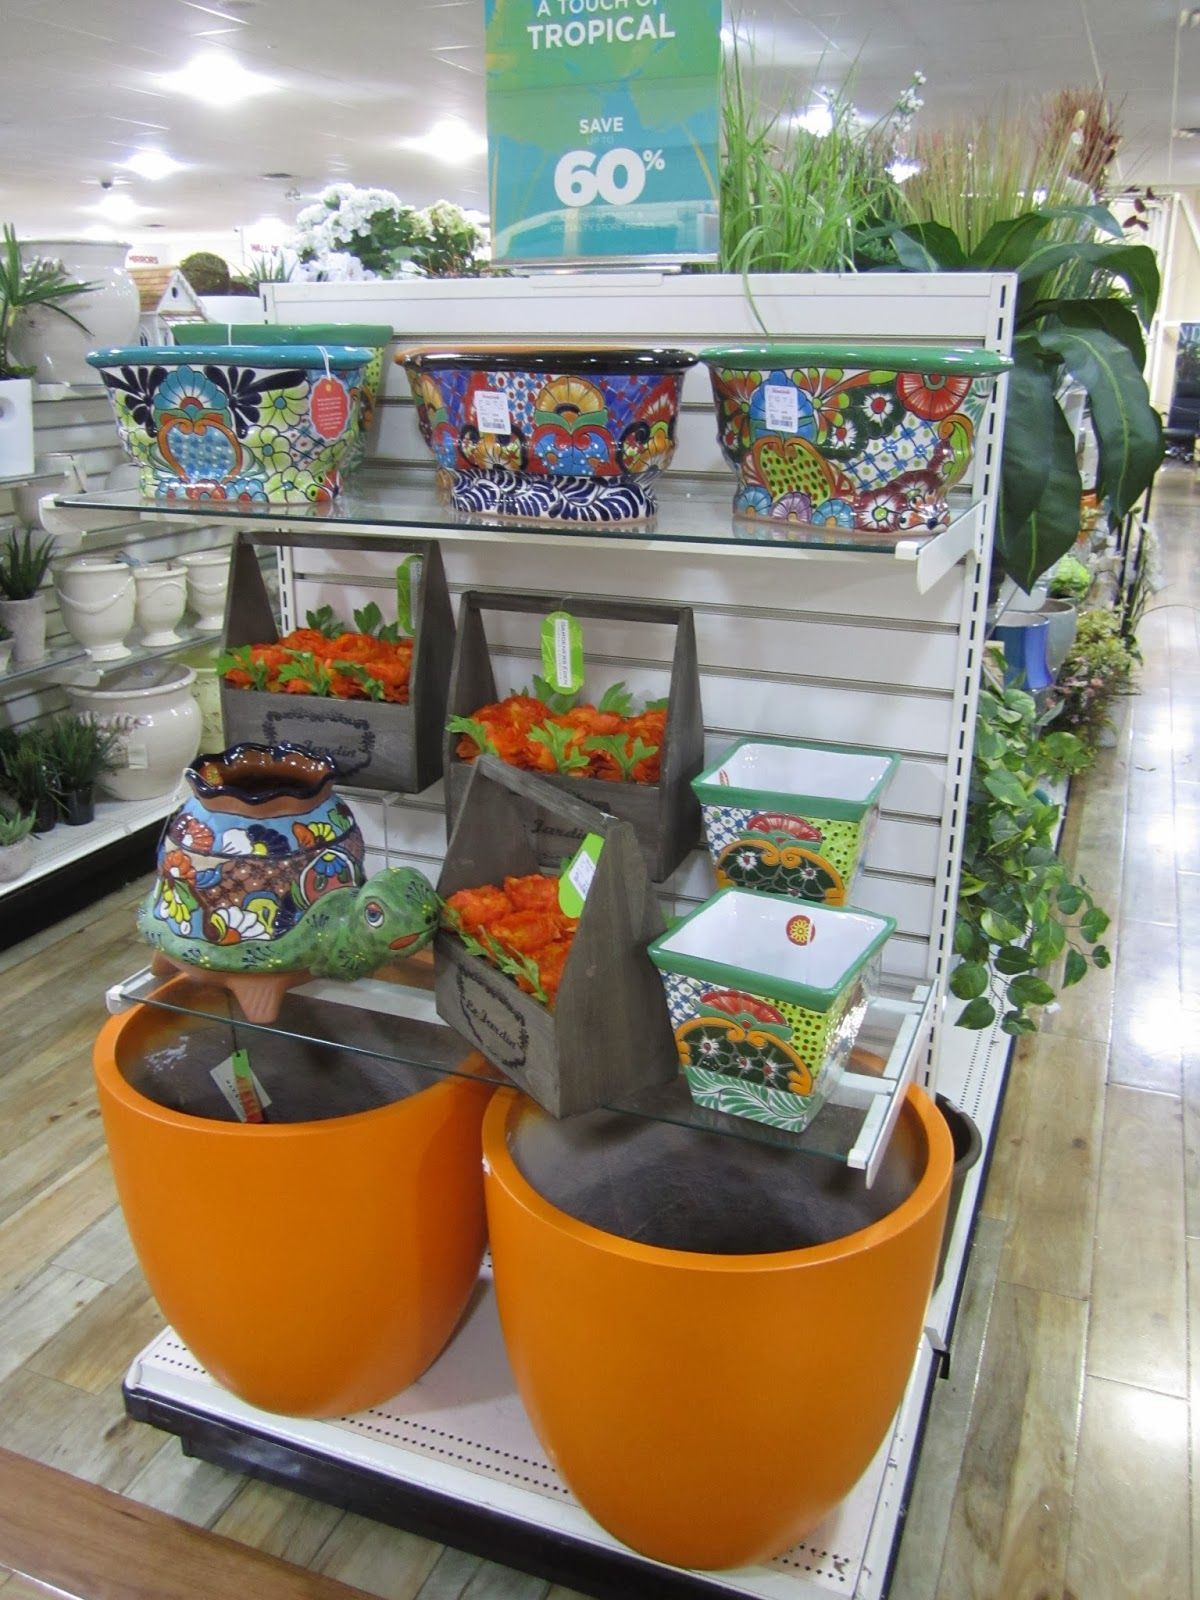 Attirant TJMaxx Homegoods Heaven: Garden Stools, Planters And Decor For Spring, Plus  The African